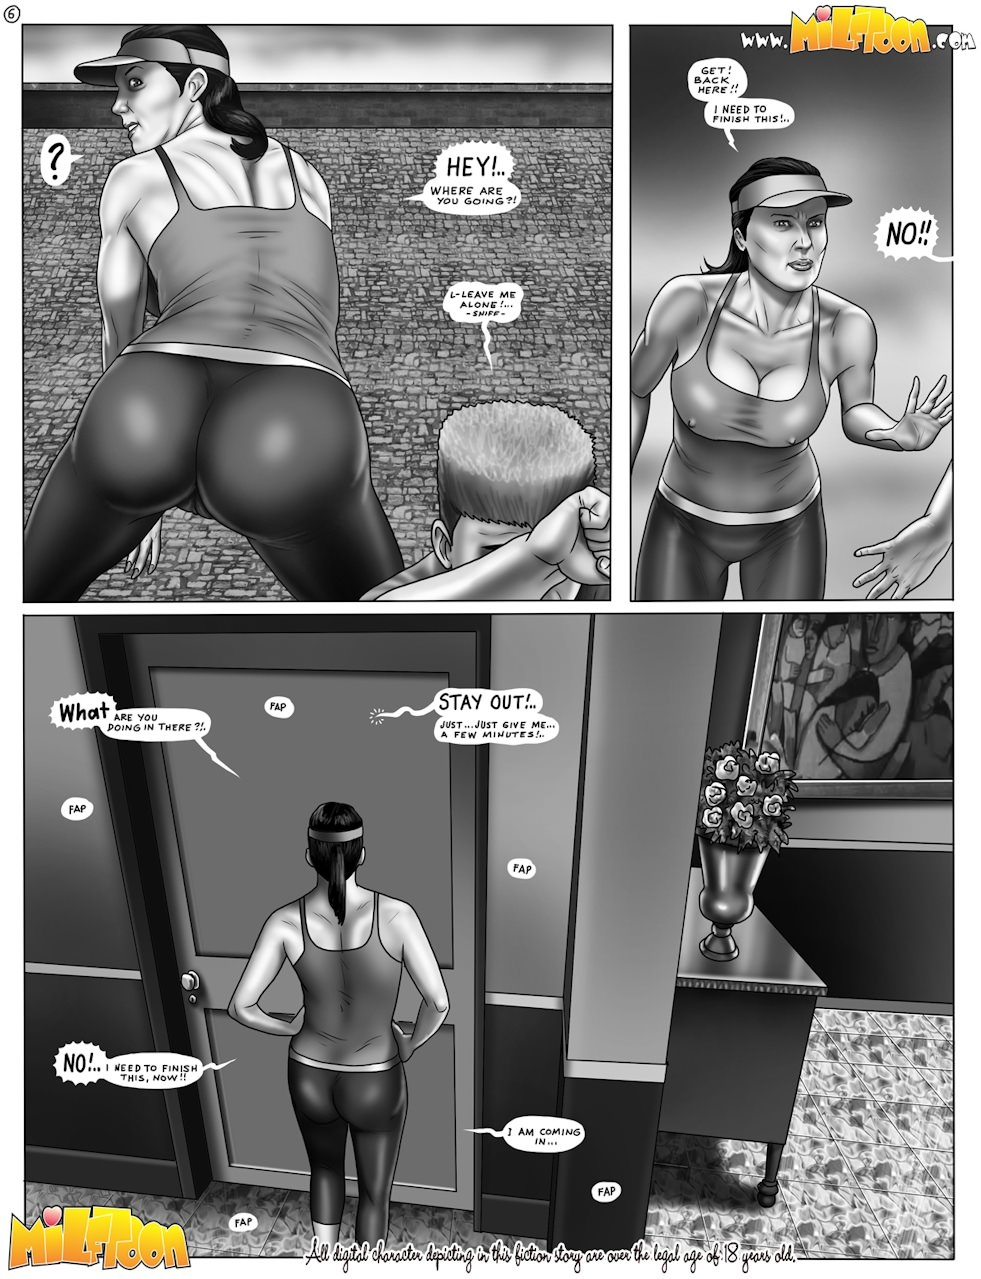 Amanda Porn Animation gta 5 (based on the game) - other, porn comics online at